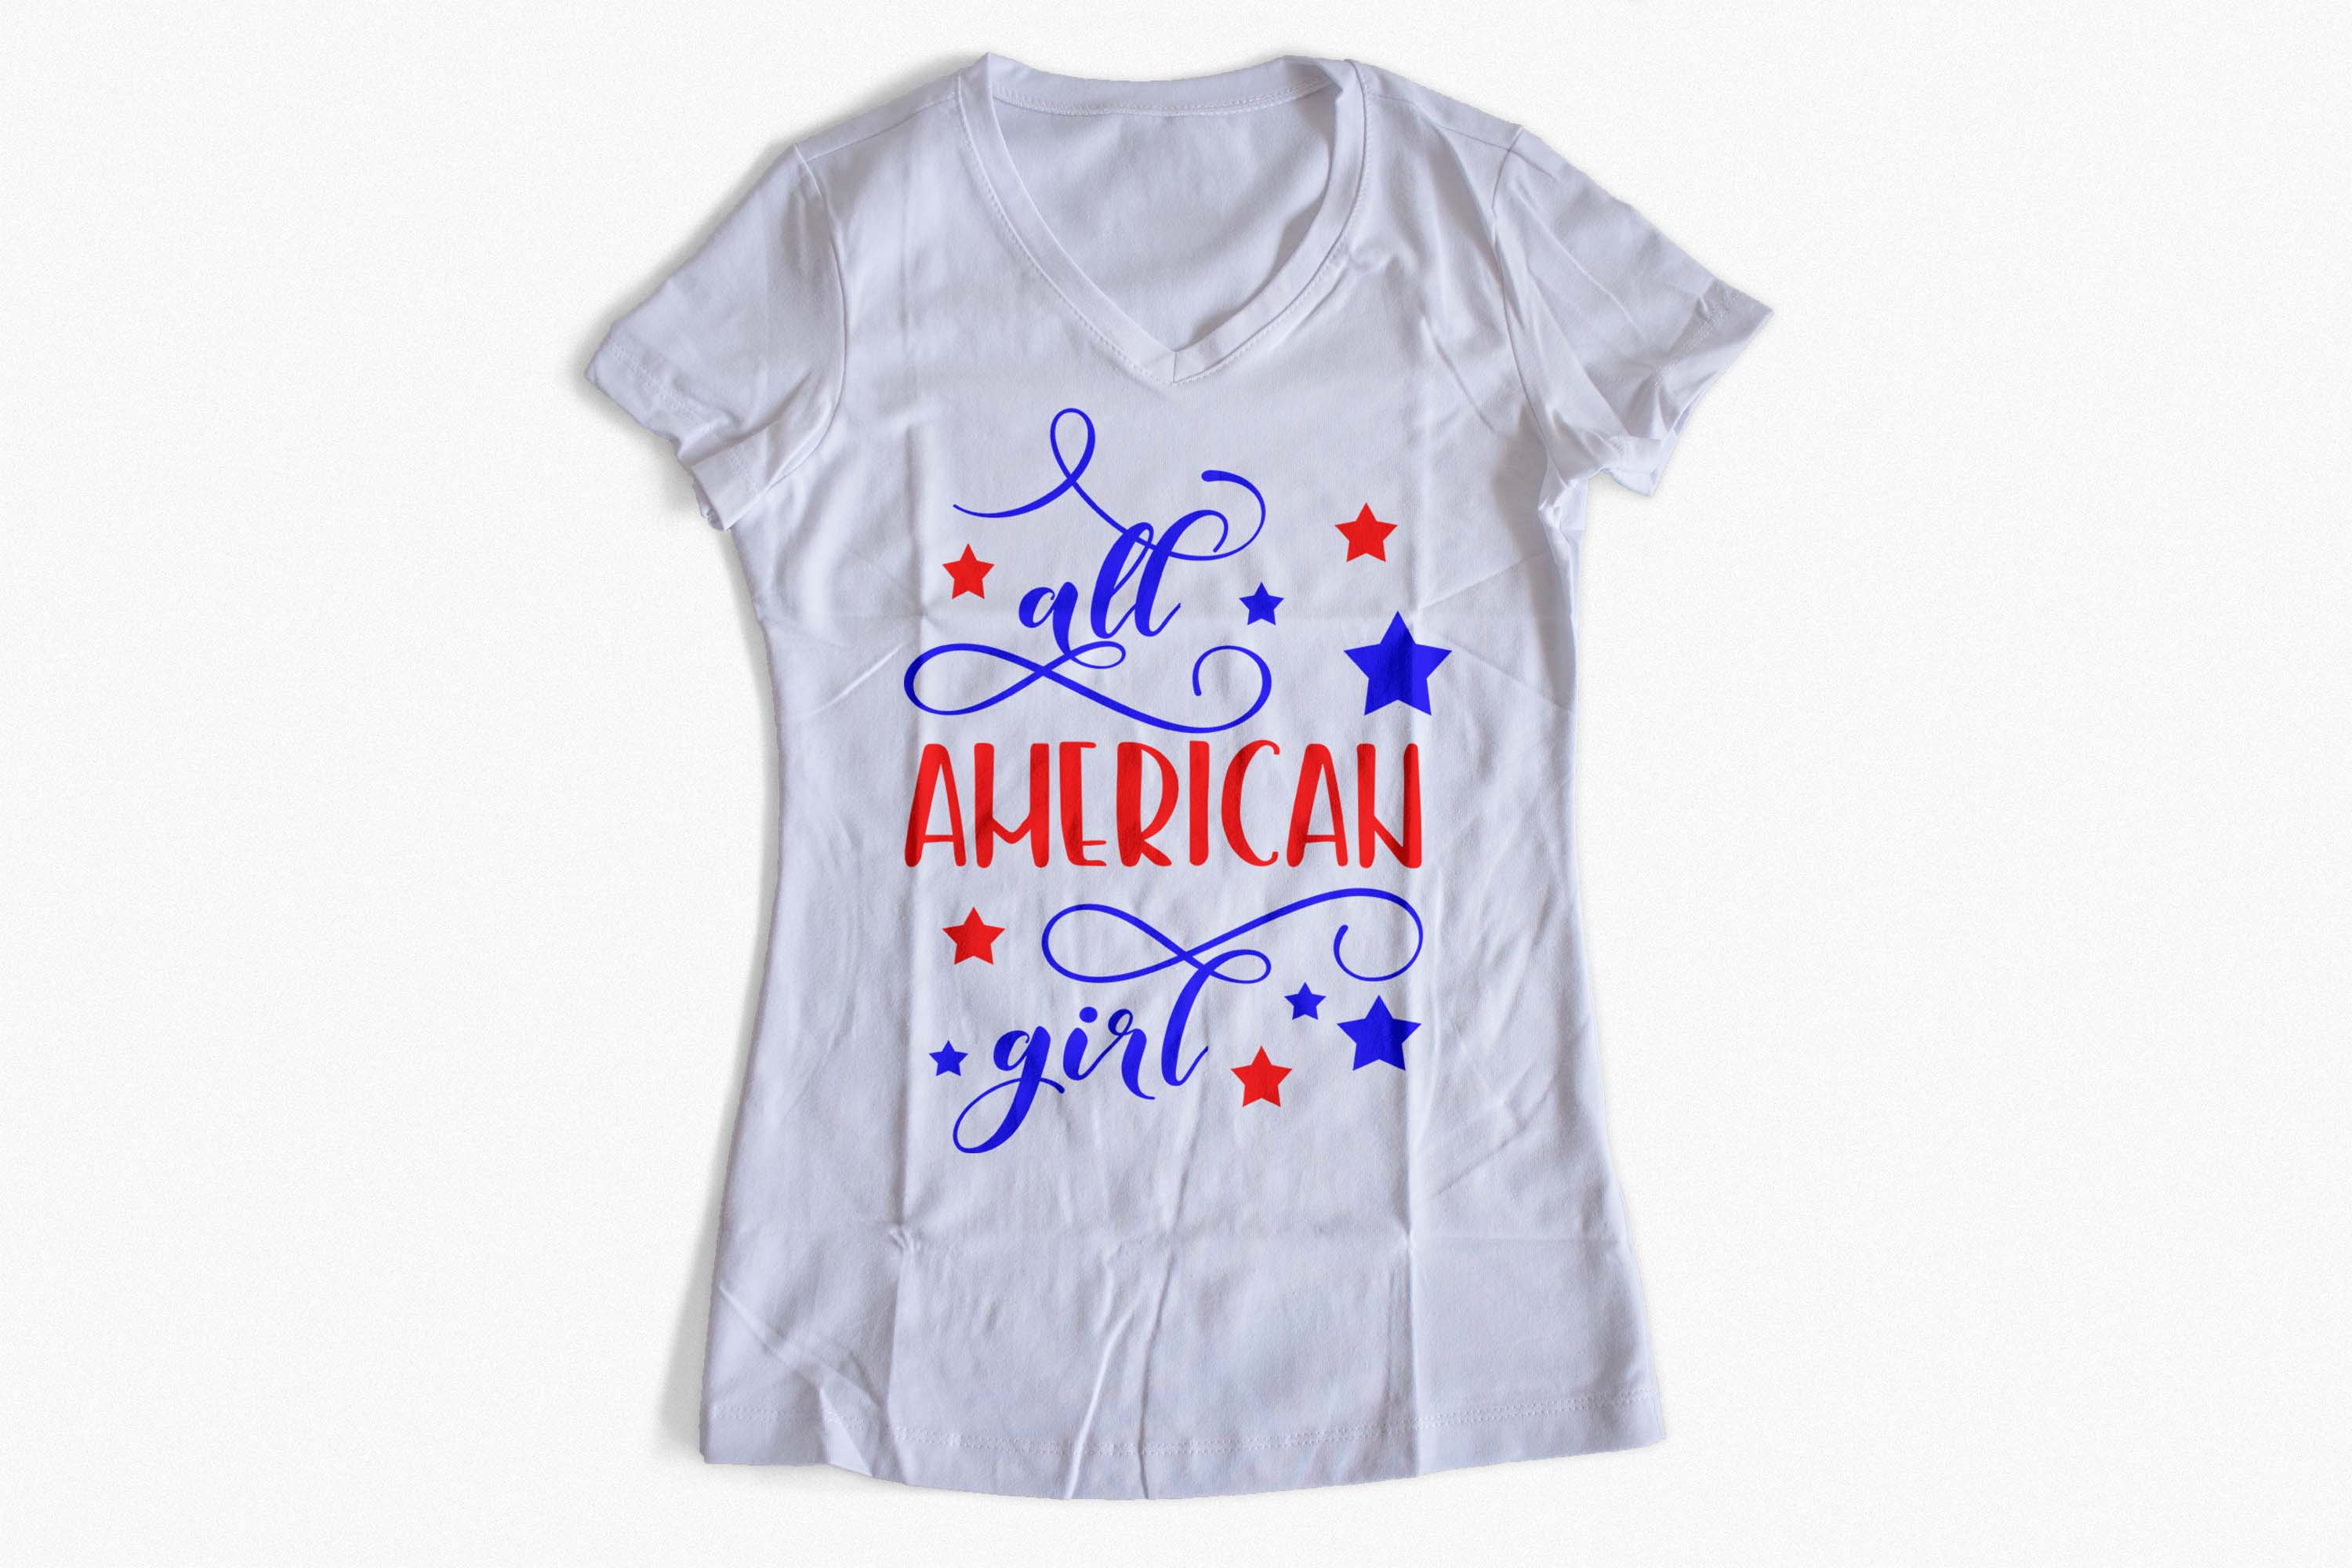 All American girl SVG PNG EPS DXF example image 3